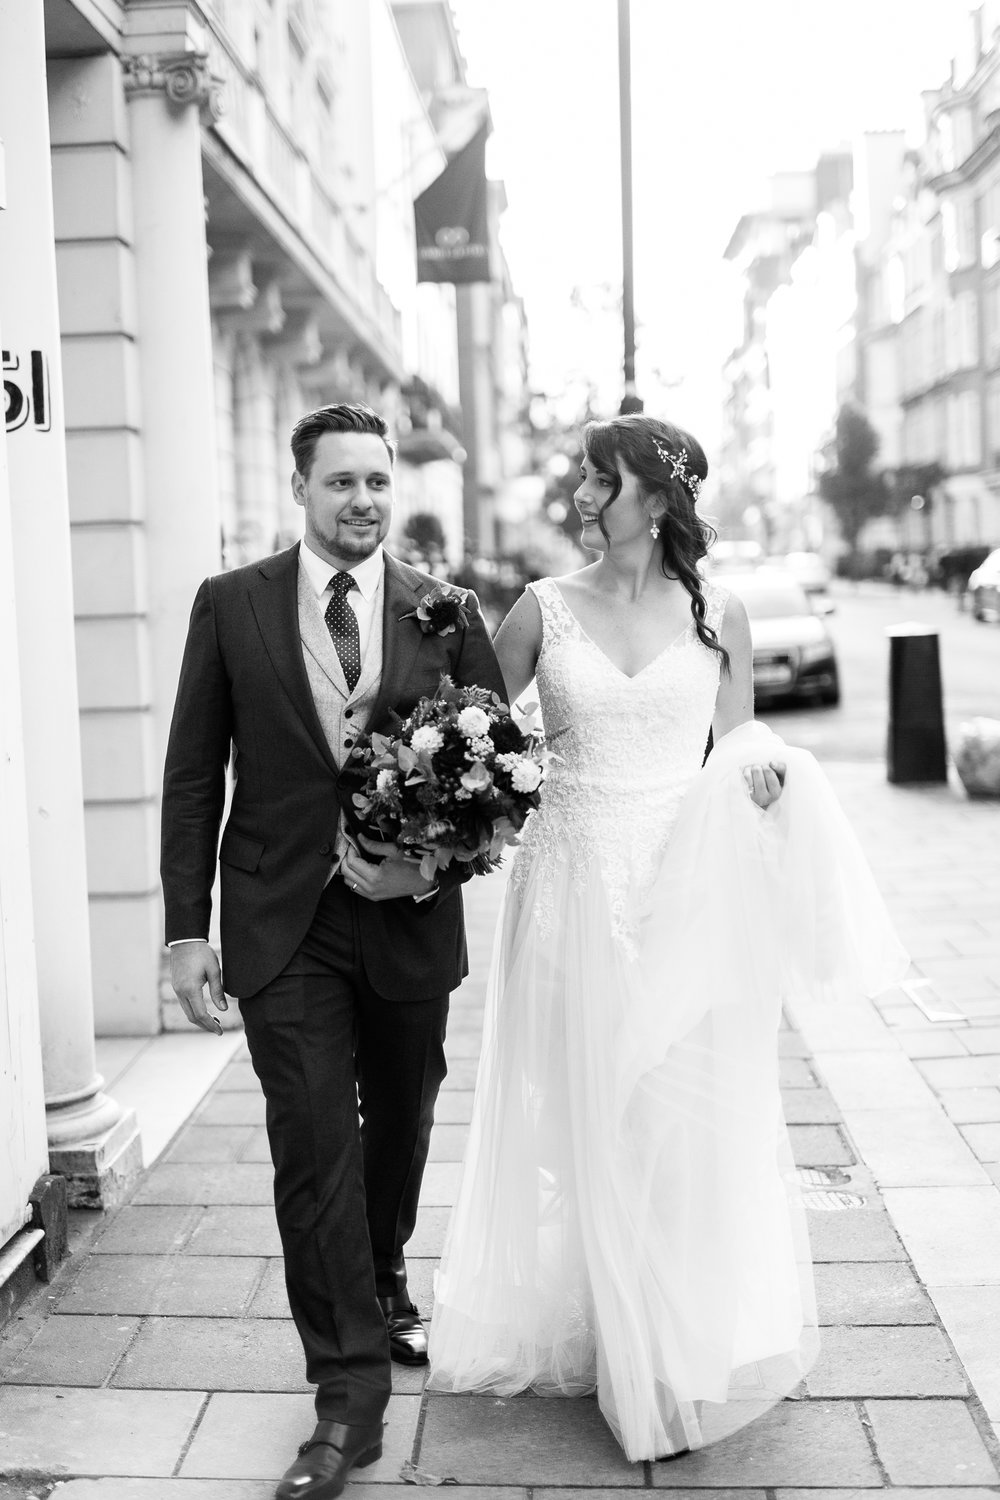 VDB_Mayfair_London_Wedding_Photographer069.jpg